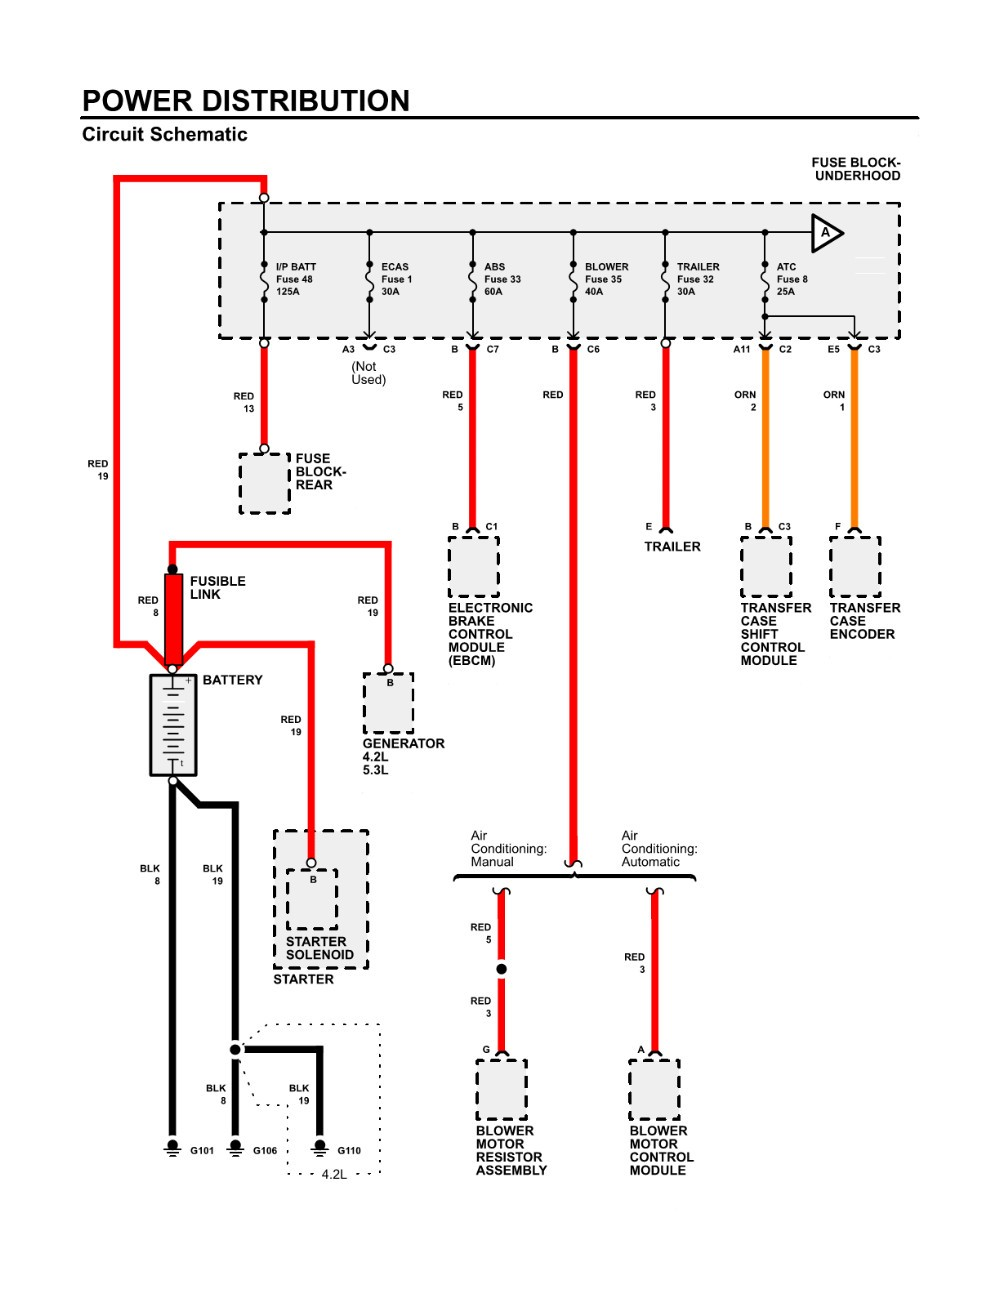 2004 Chevy Colorado Fan Resistor Wiring Diagram - wiring diagram  sockets-time - sockets-time.vaiatempo.it | 2004 Chevy Colorado Blower Wiring Diagram |  | Vai a Tempo!